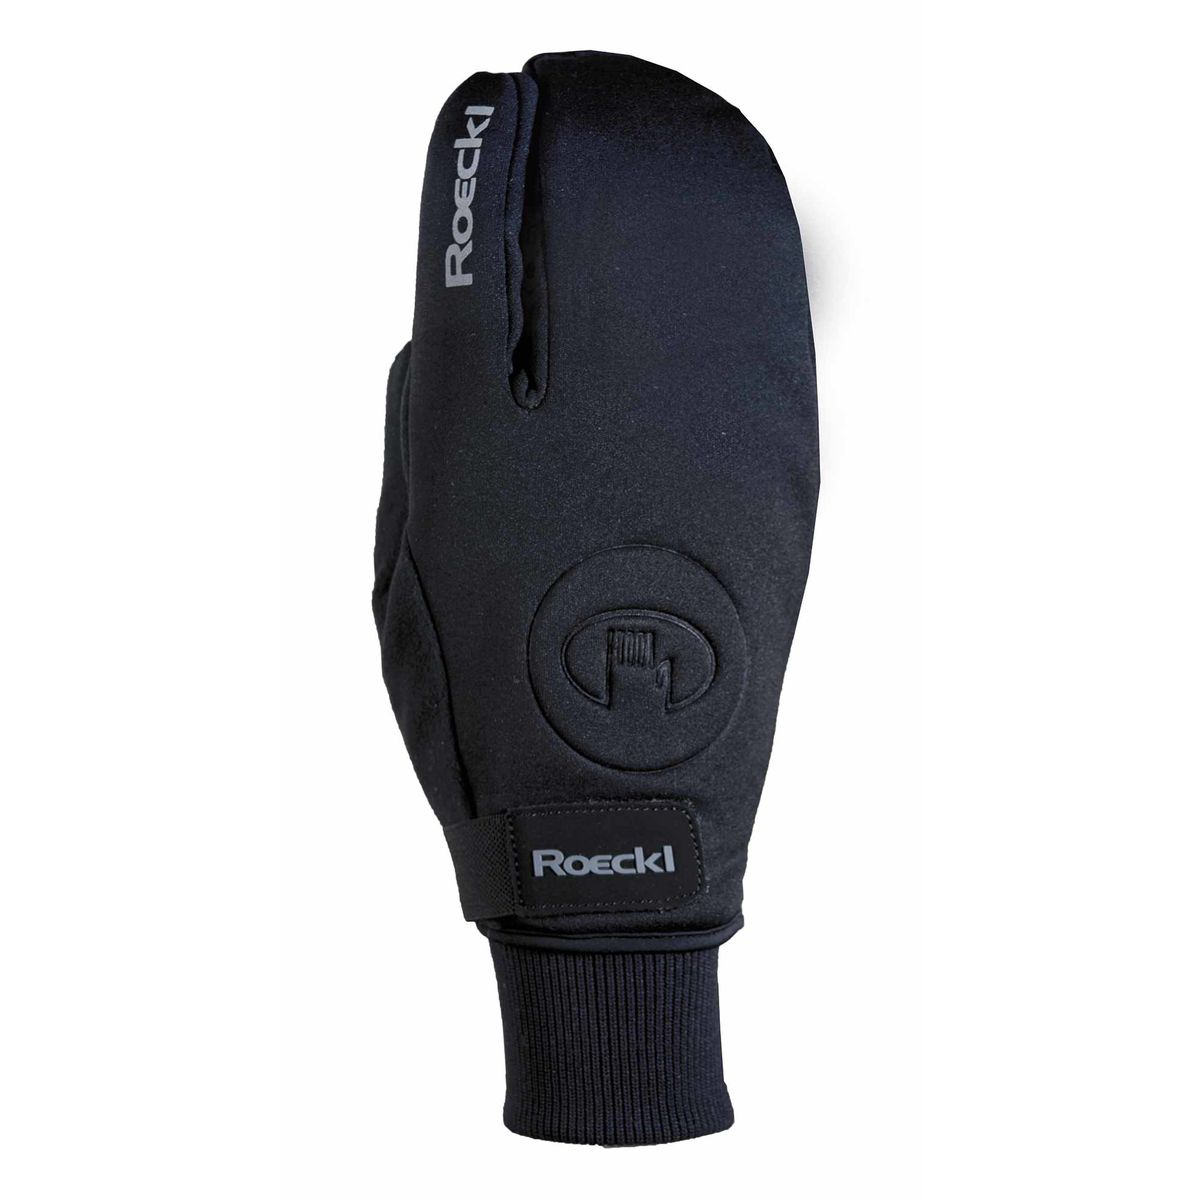 VENERI TRIGGER WINDSTOPPER softshell winter gloves